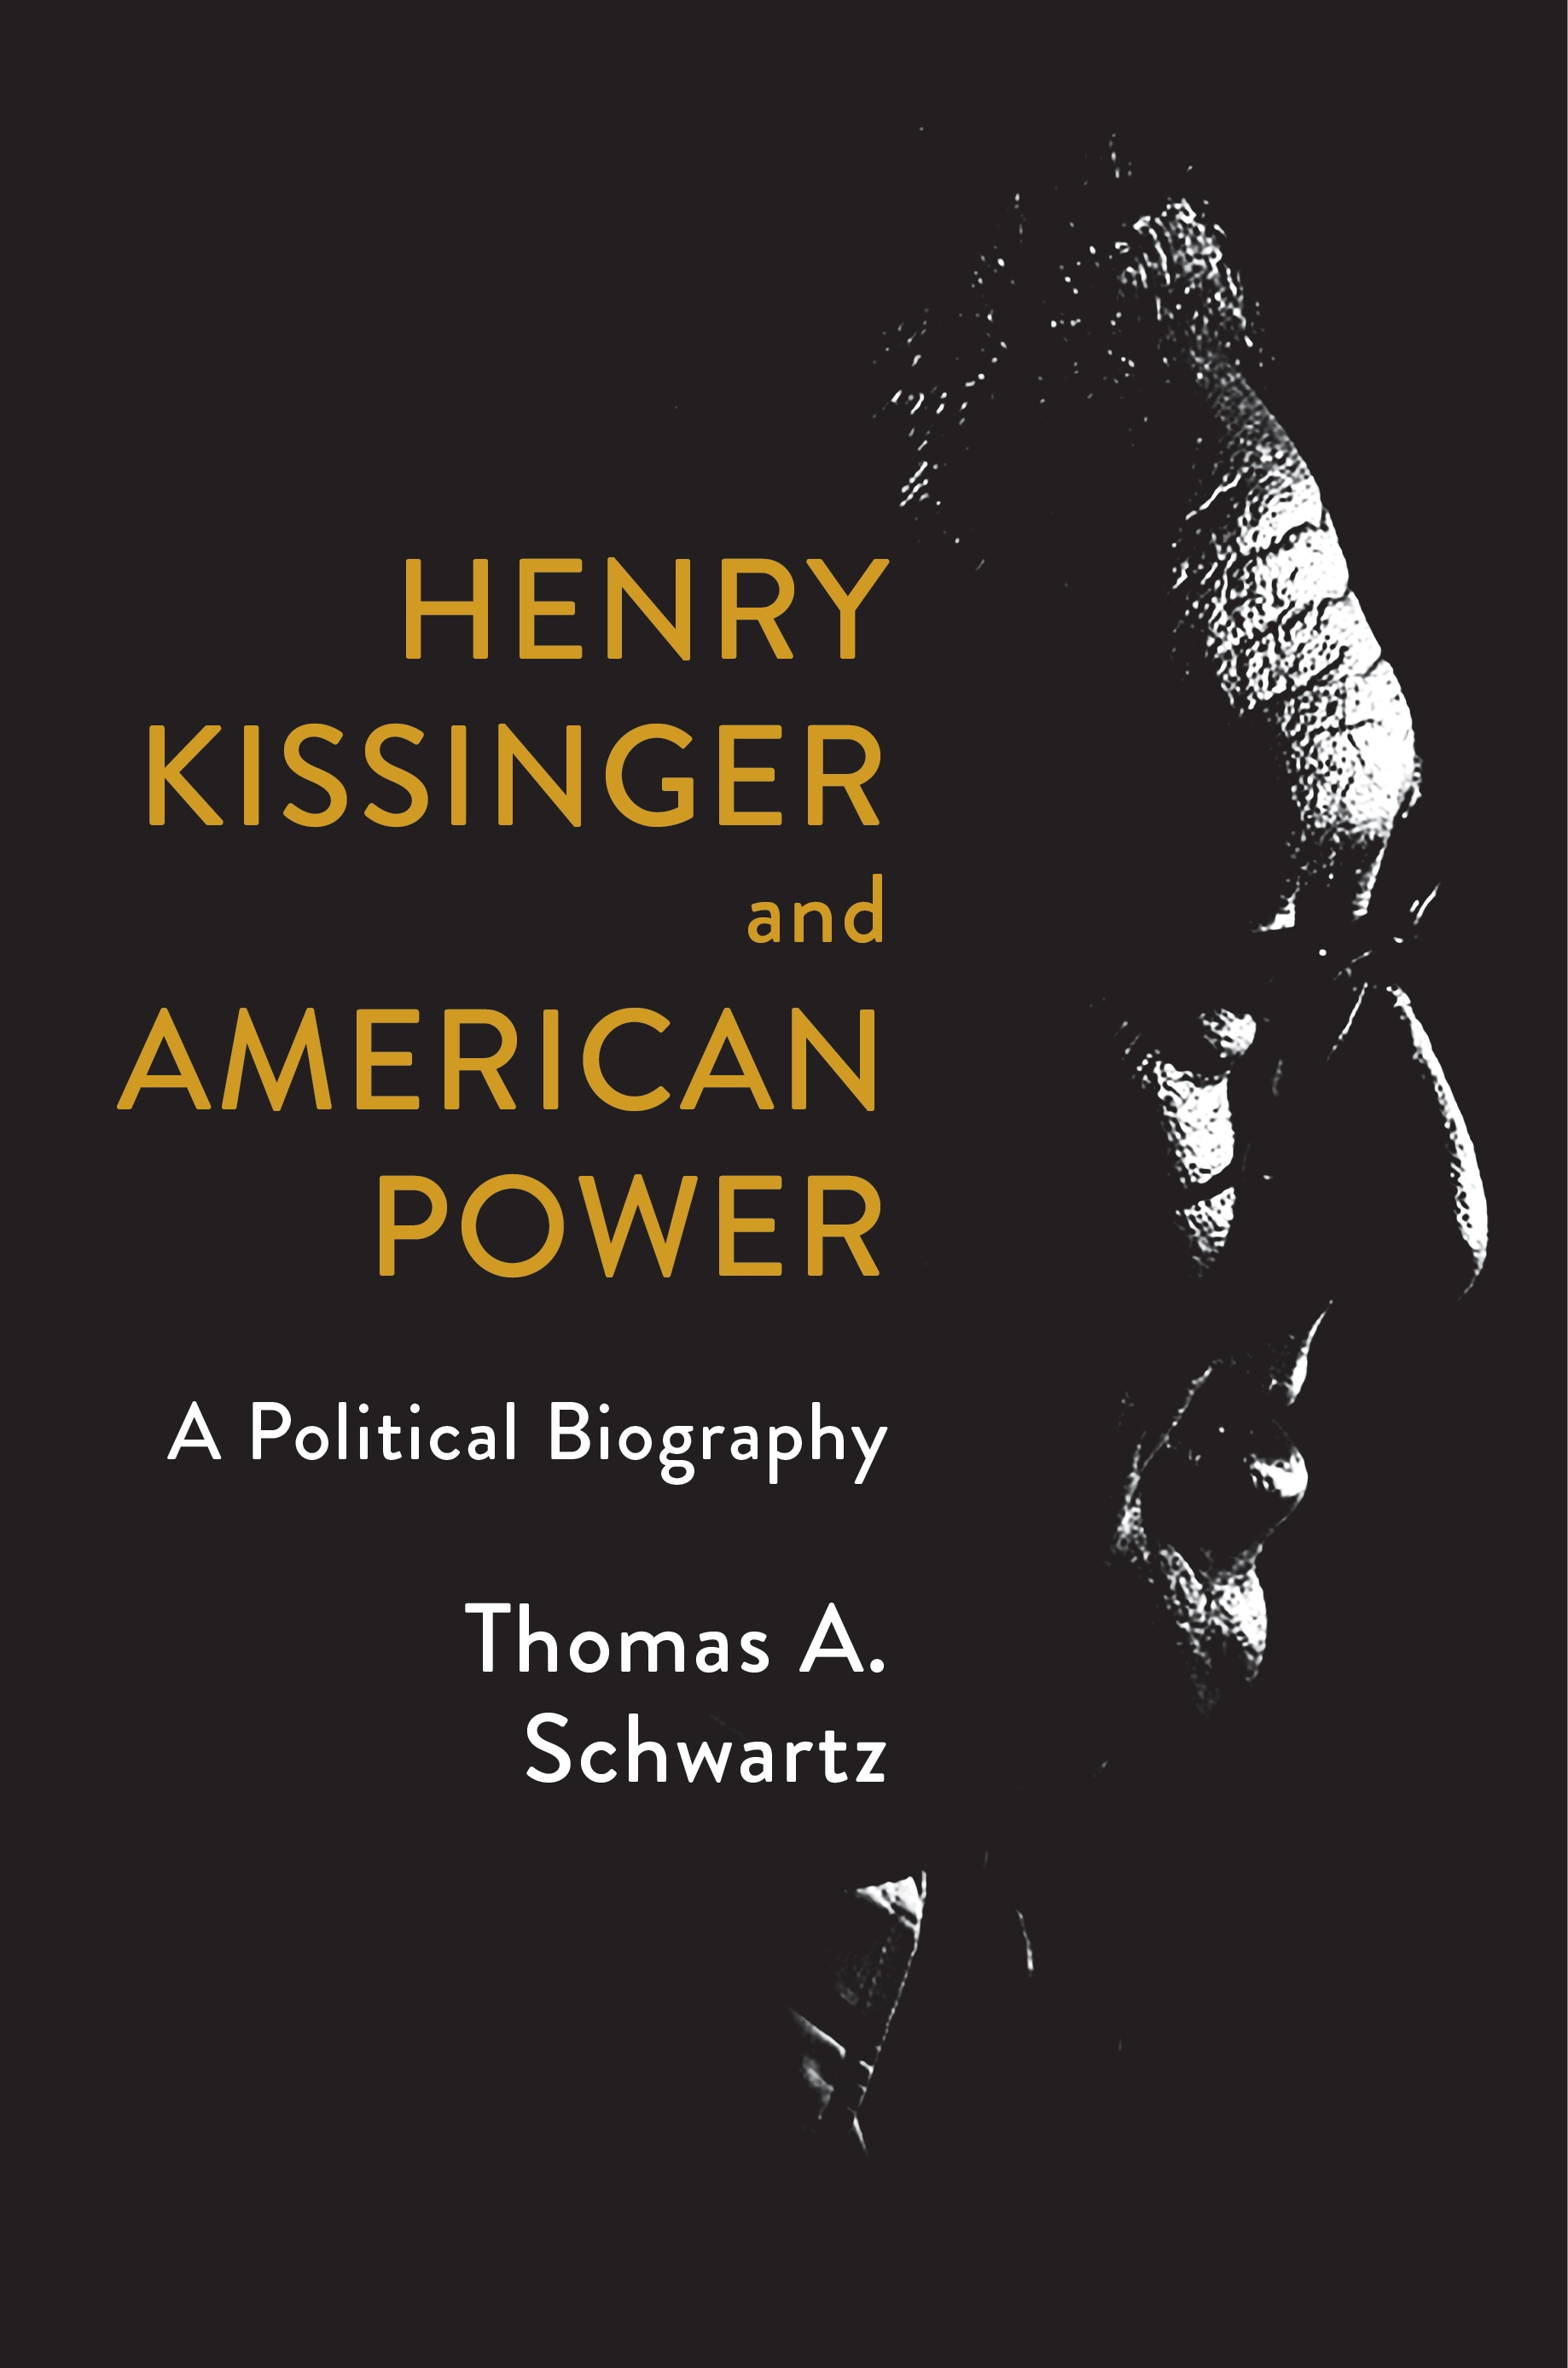 Henry Kissinger and American Power